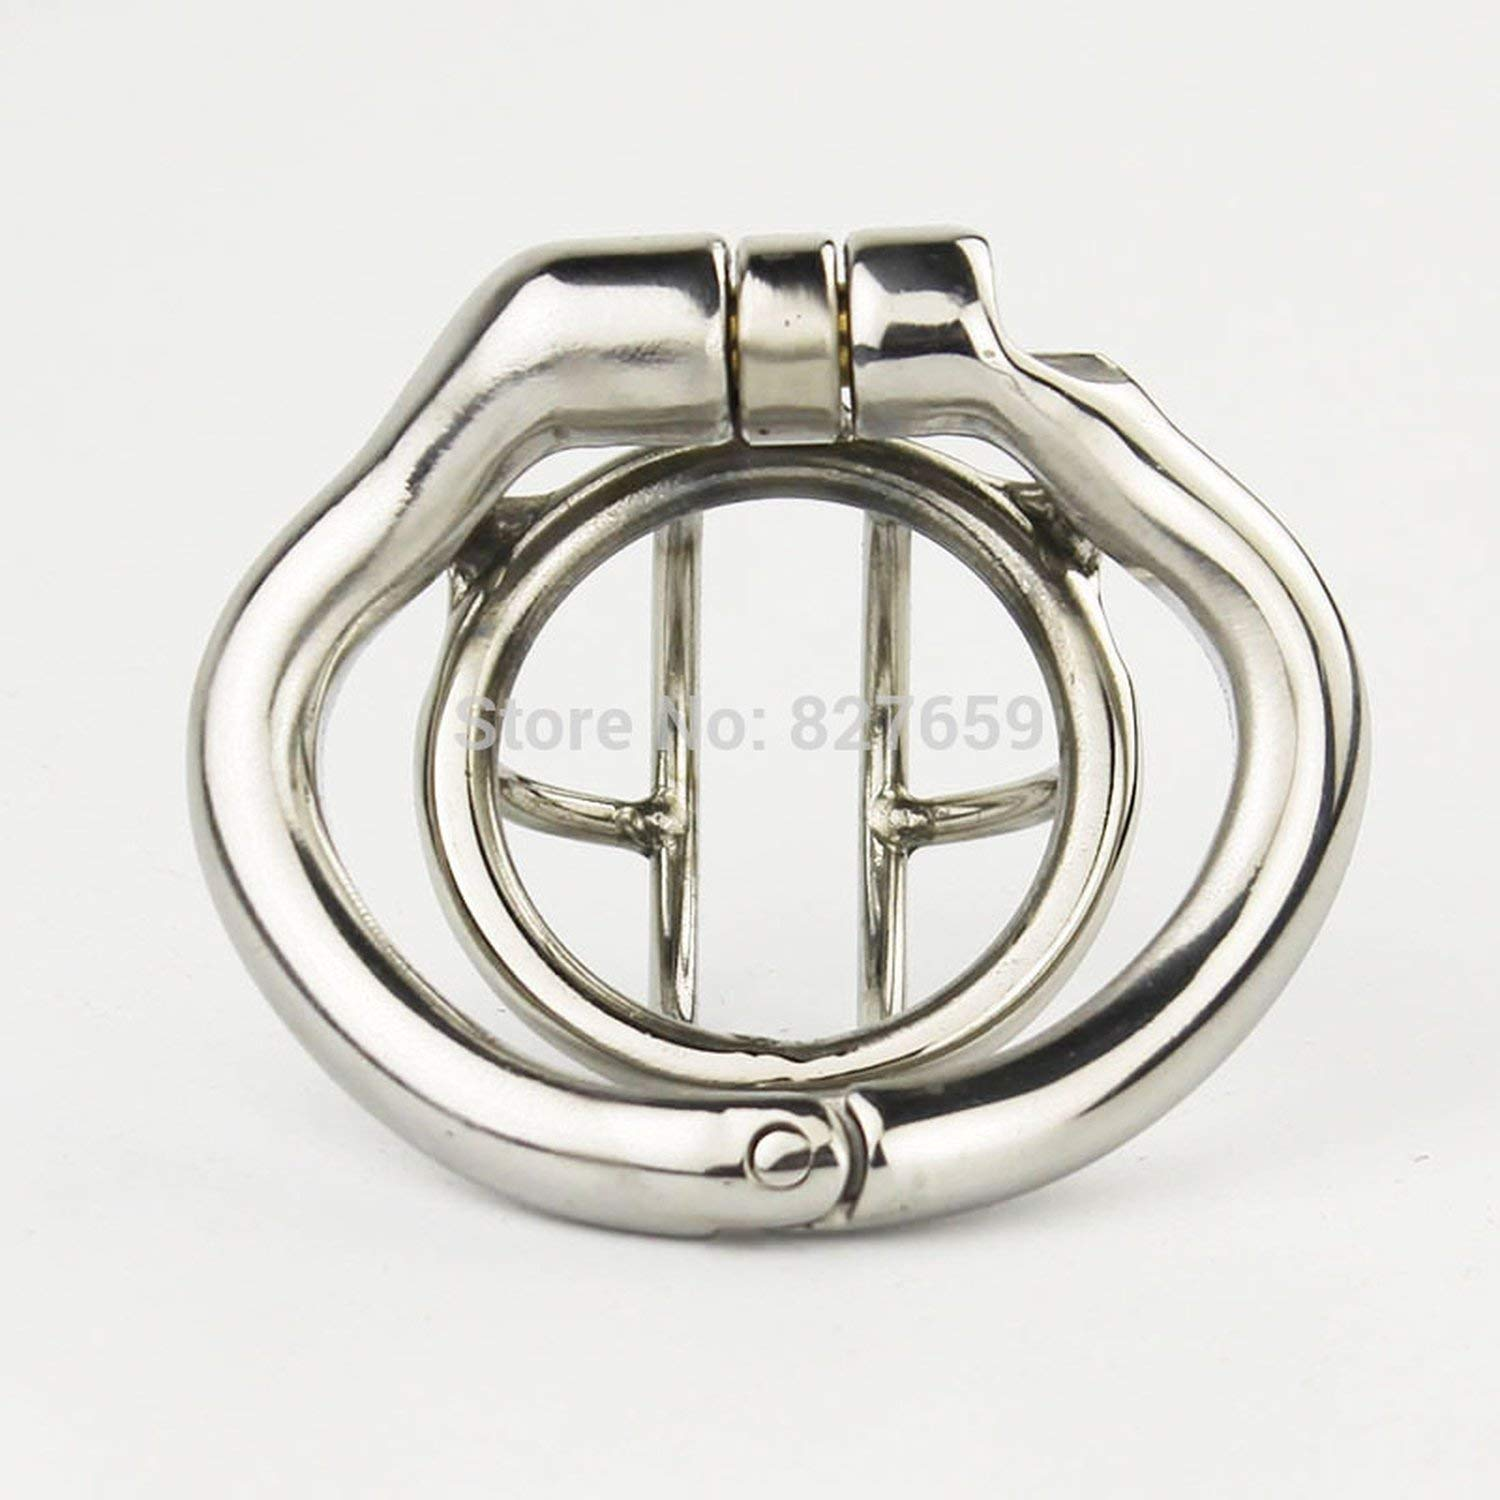 2018 Super Small Male Stainless Steel Cage with with arc-Shaped Ring Men Belt,38mm Ring by Little Sophie (Image #3)